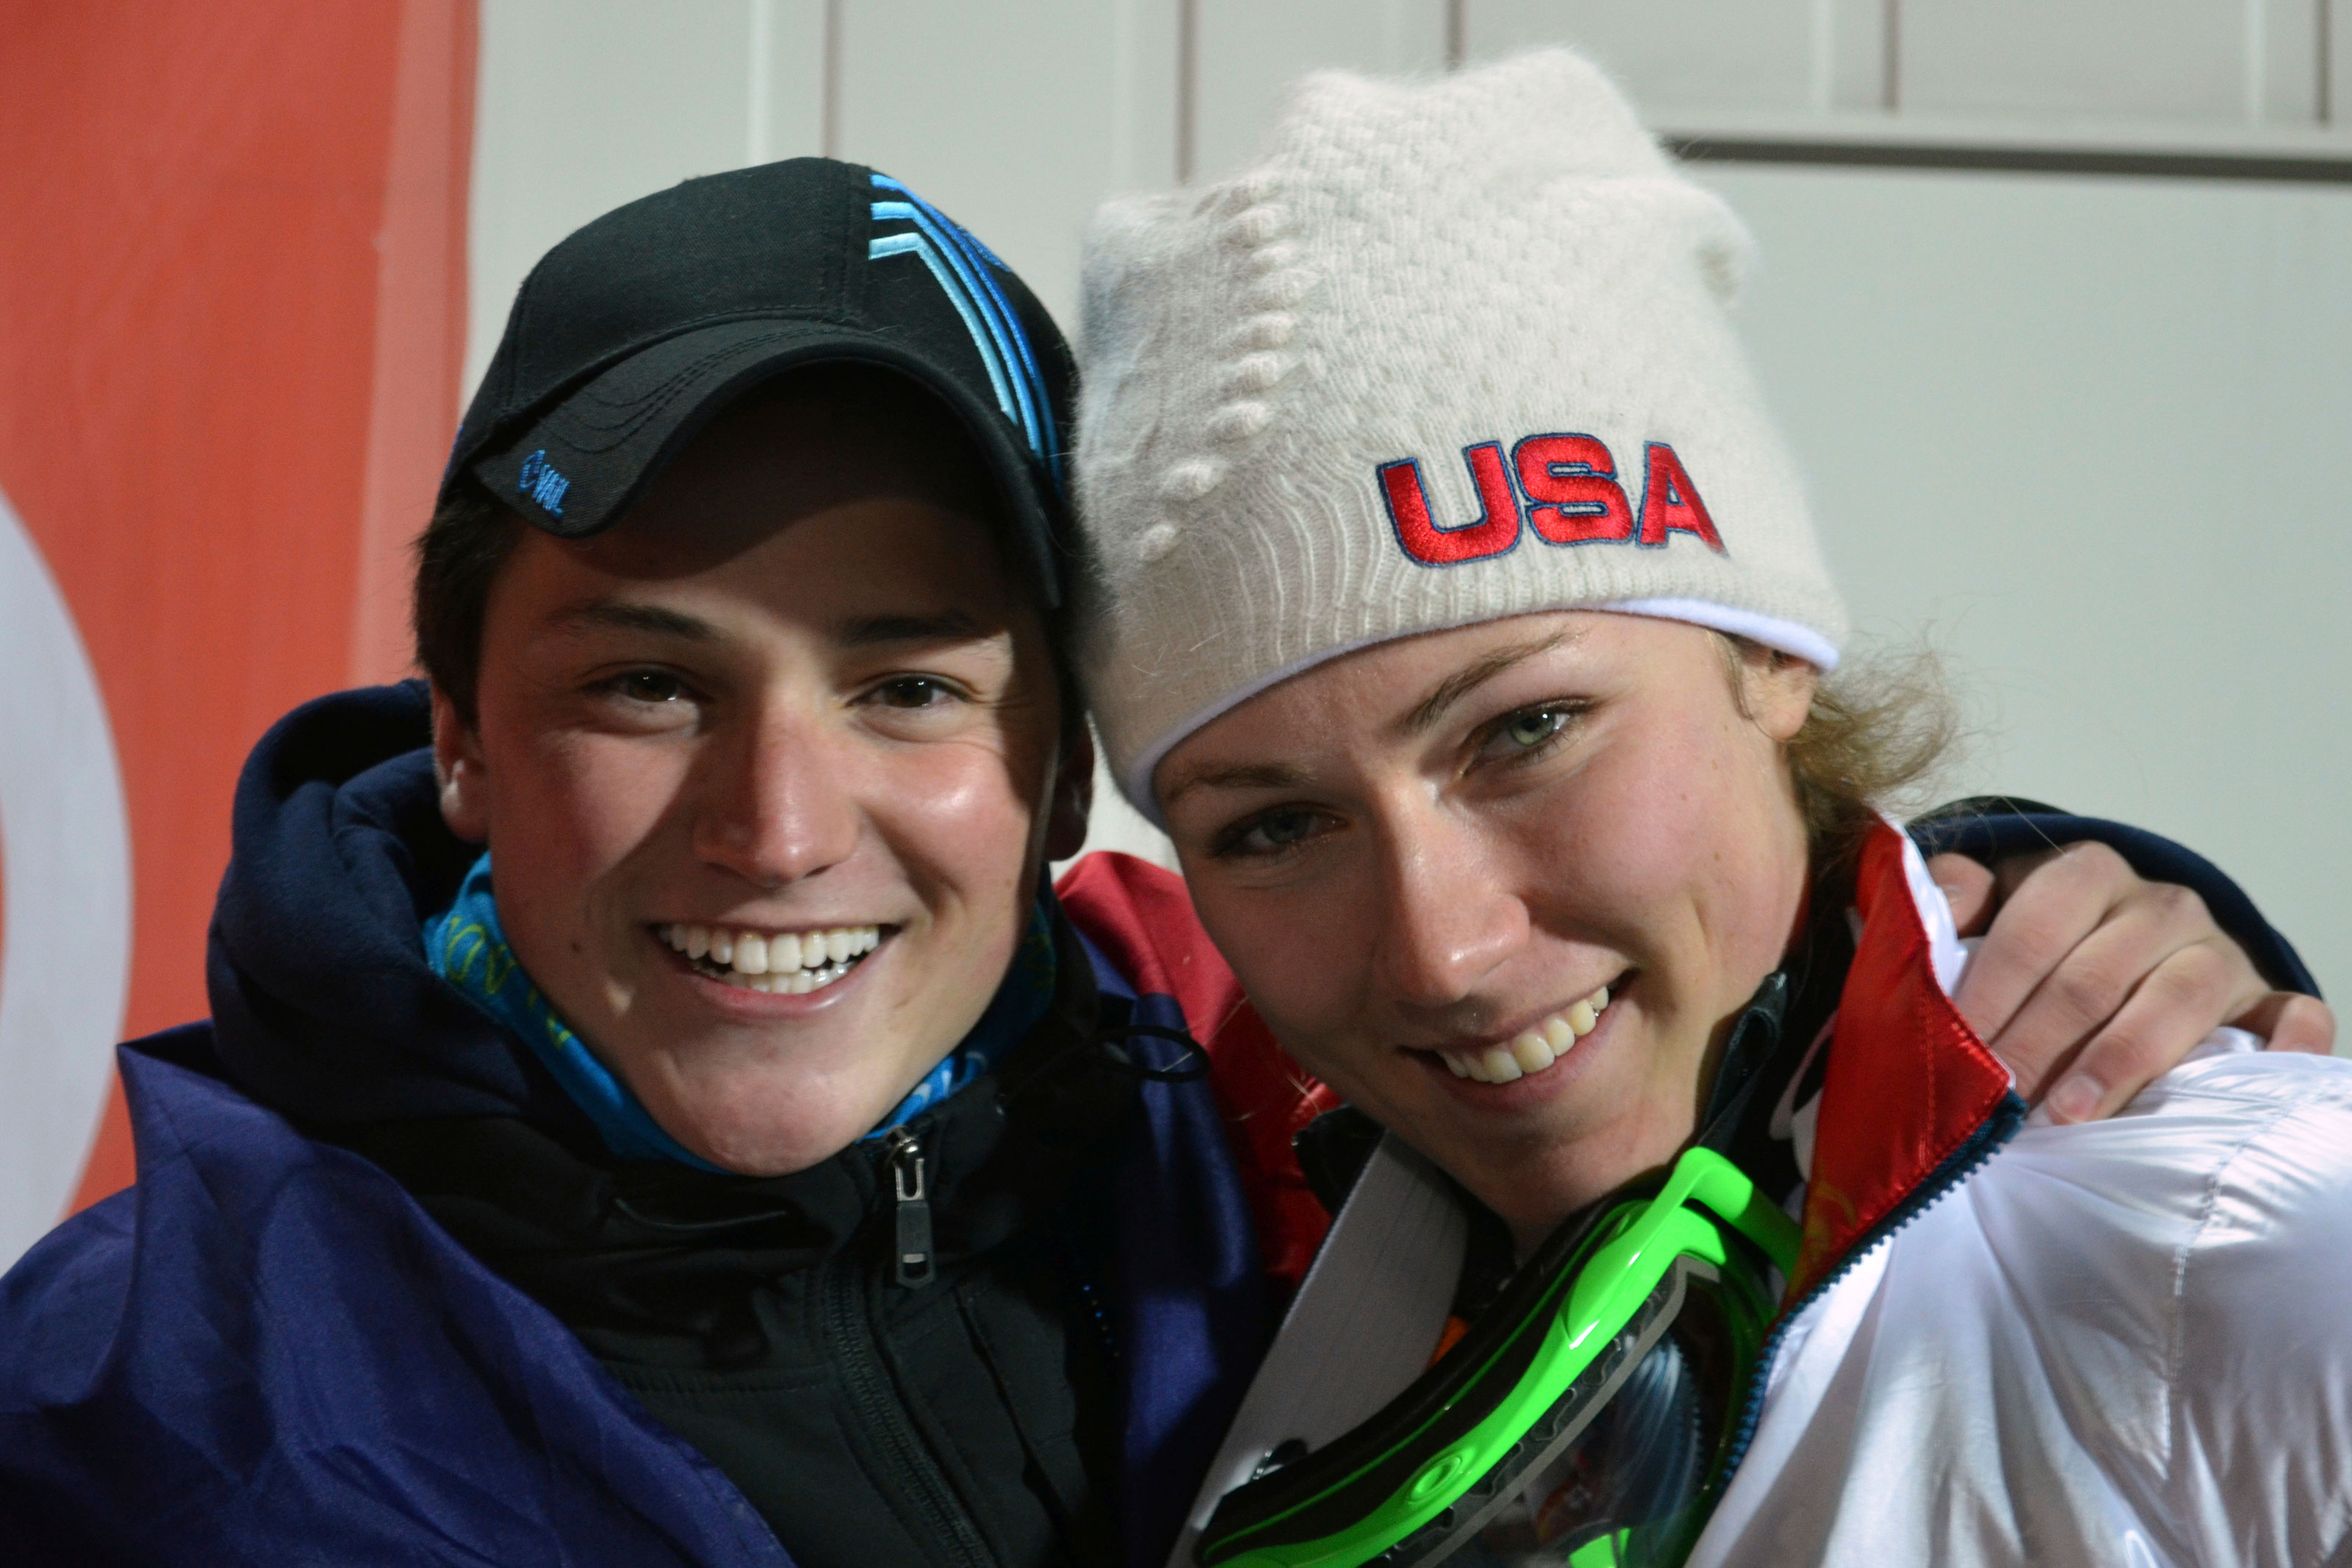 Photo: Thomas Walsh & Mikaela Shiffrin 2014 - AP